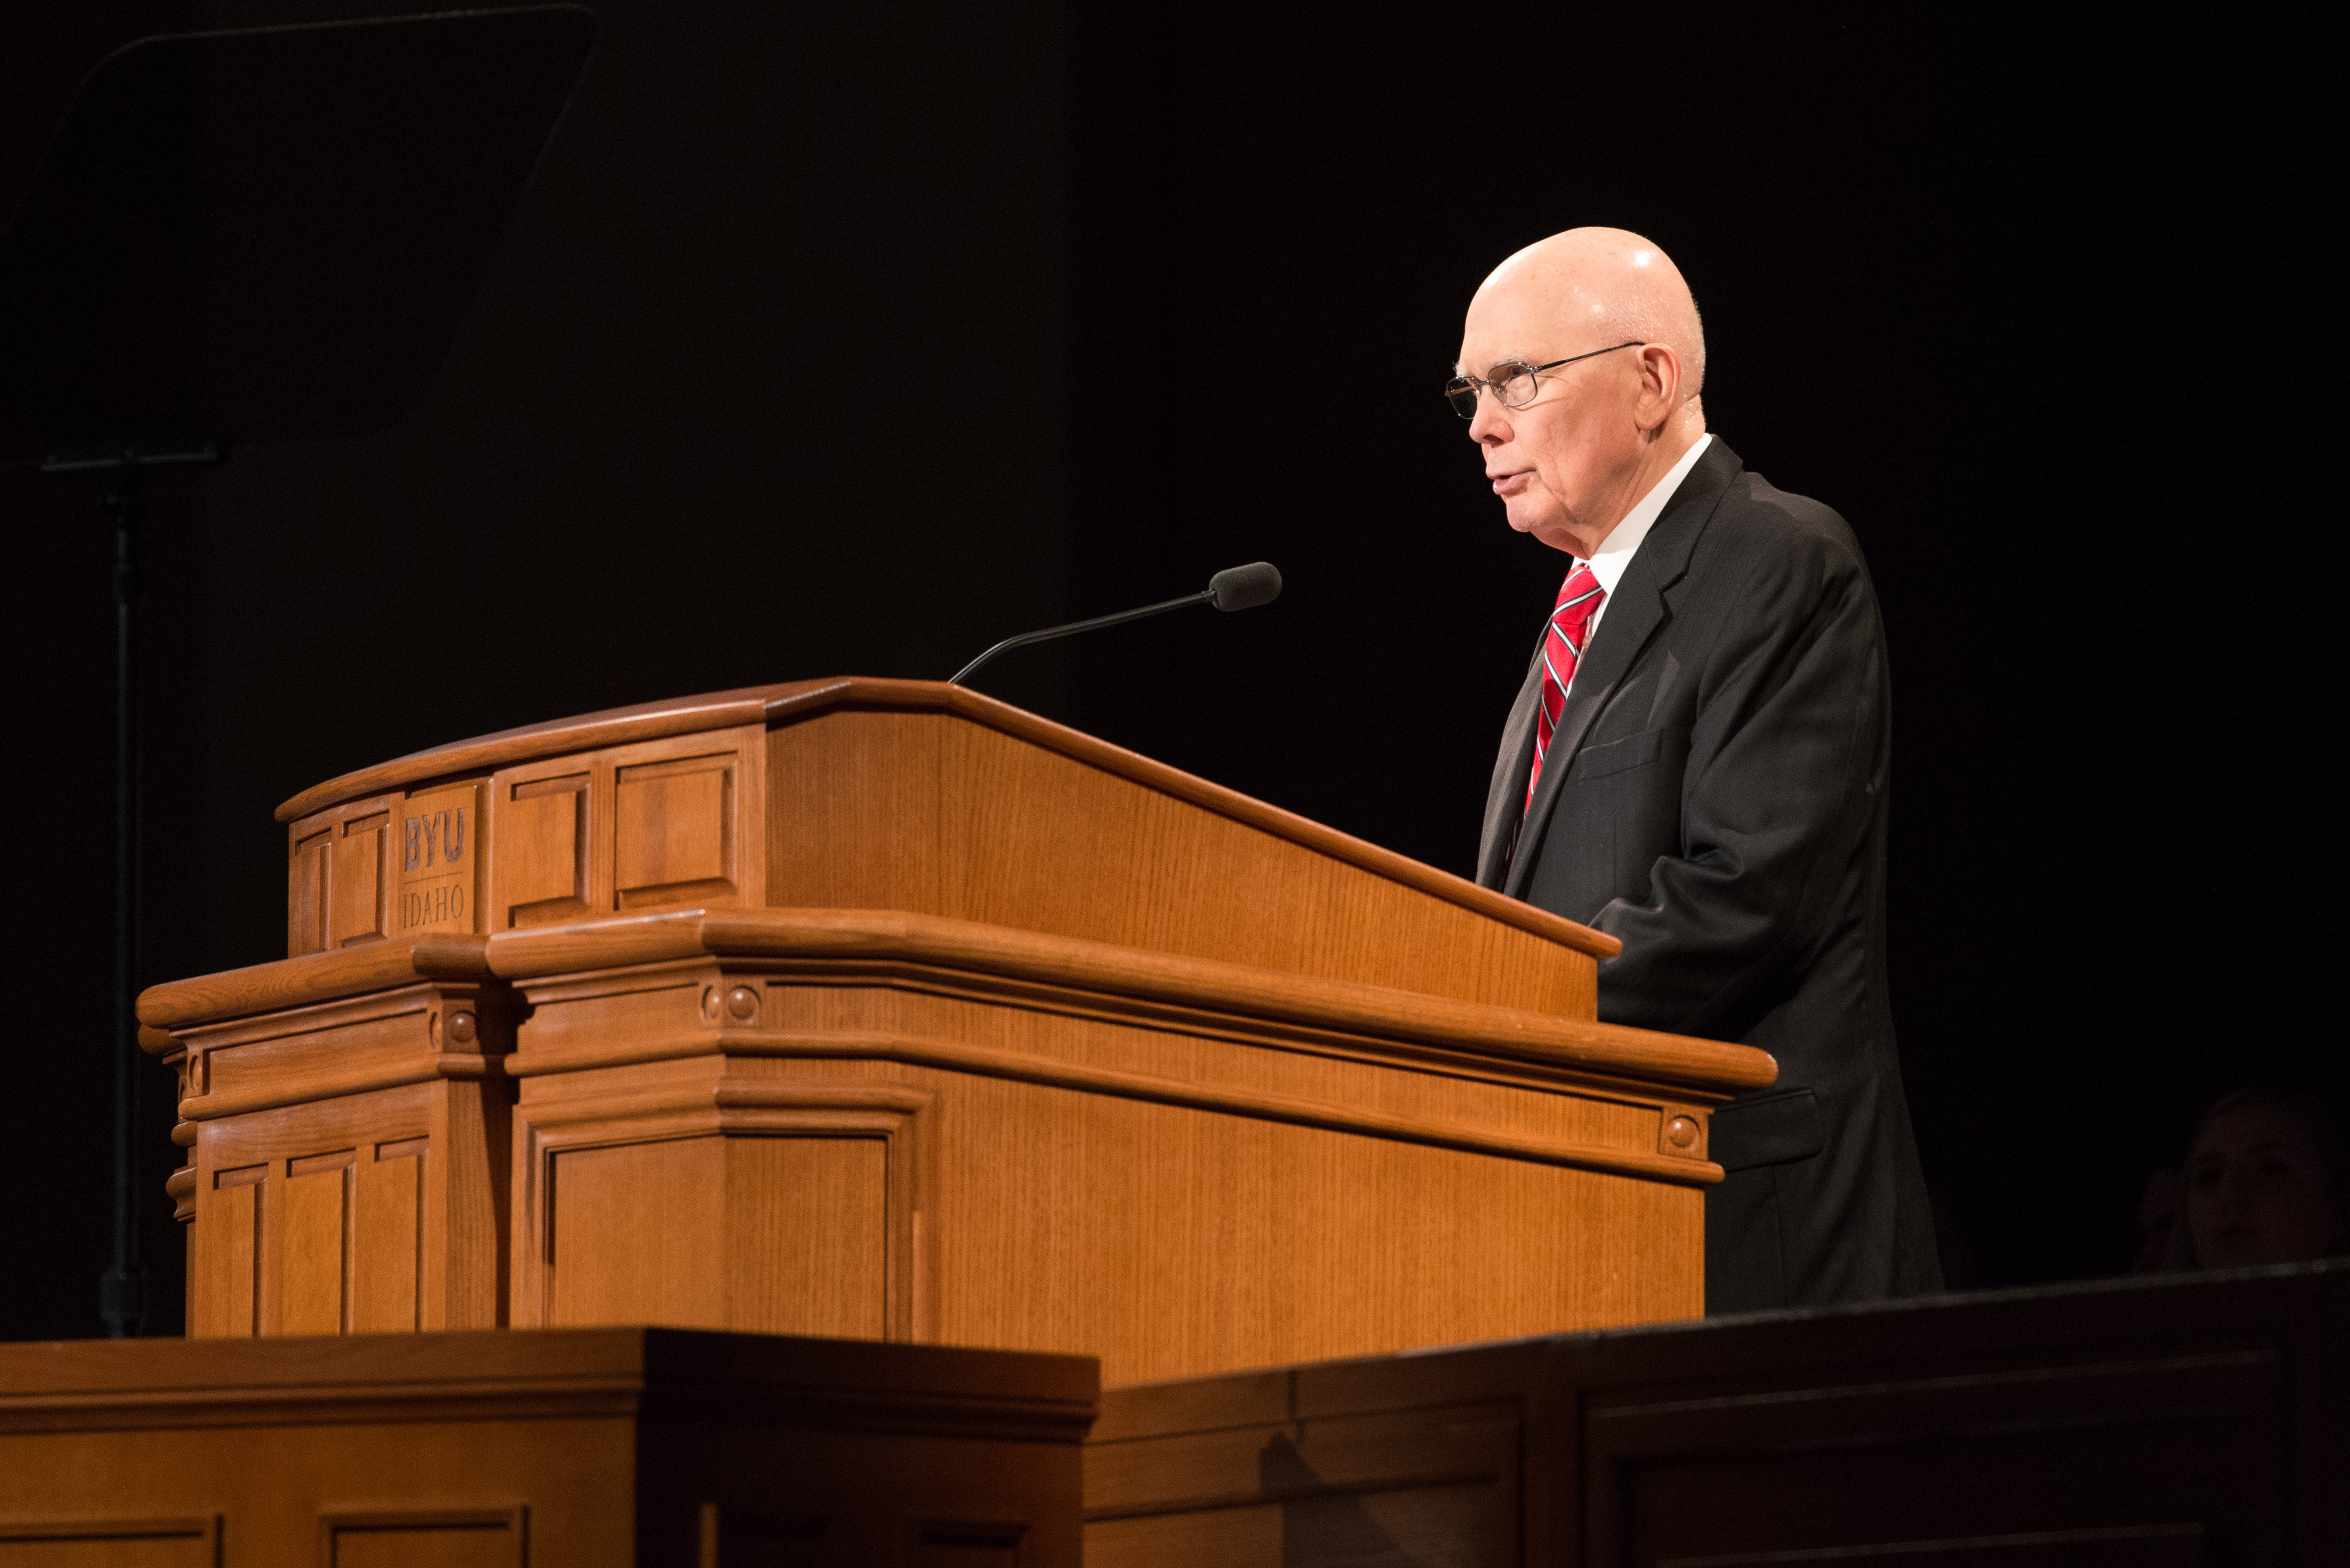 President Dallin H. Oaks of the First Presidency, speaks at a BYU-Idaho campus devotional on Oct. 30.